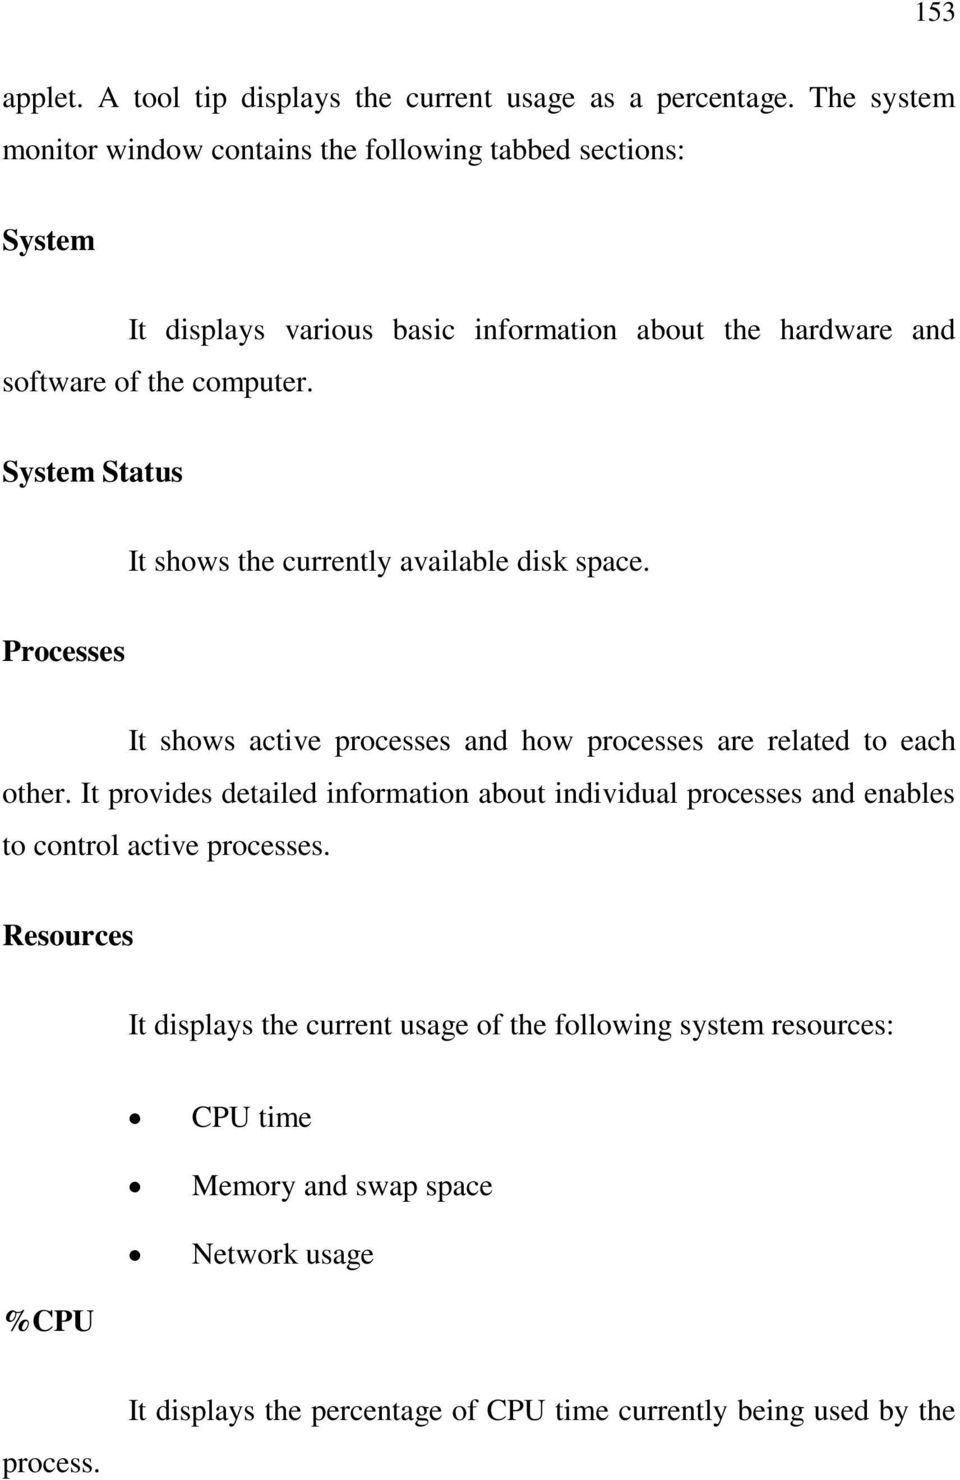 System Status It shows the currently available disk space. Processes It shows active processes and how processes are related to each other.